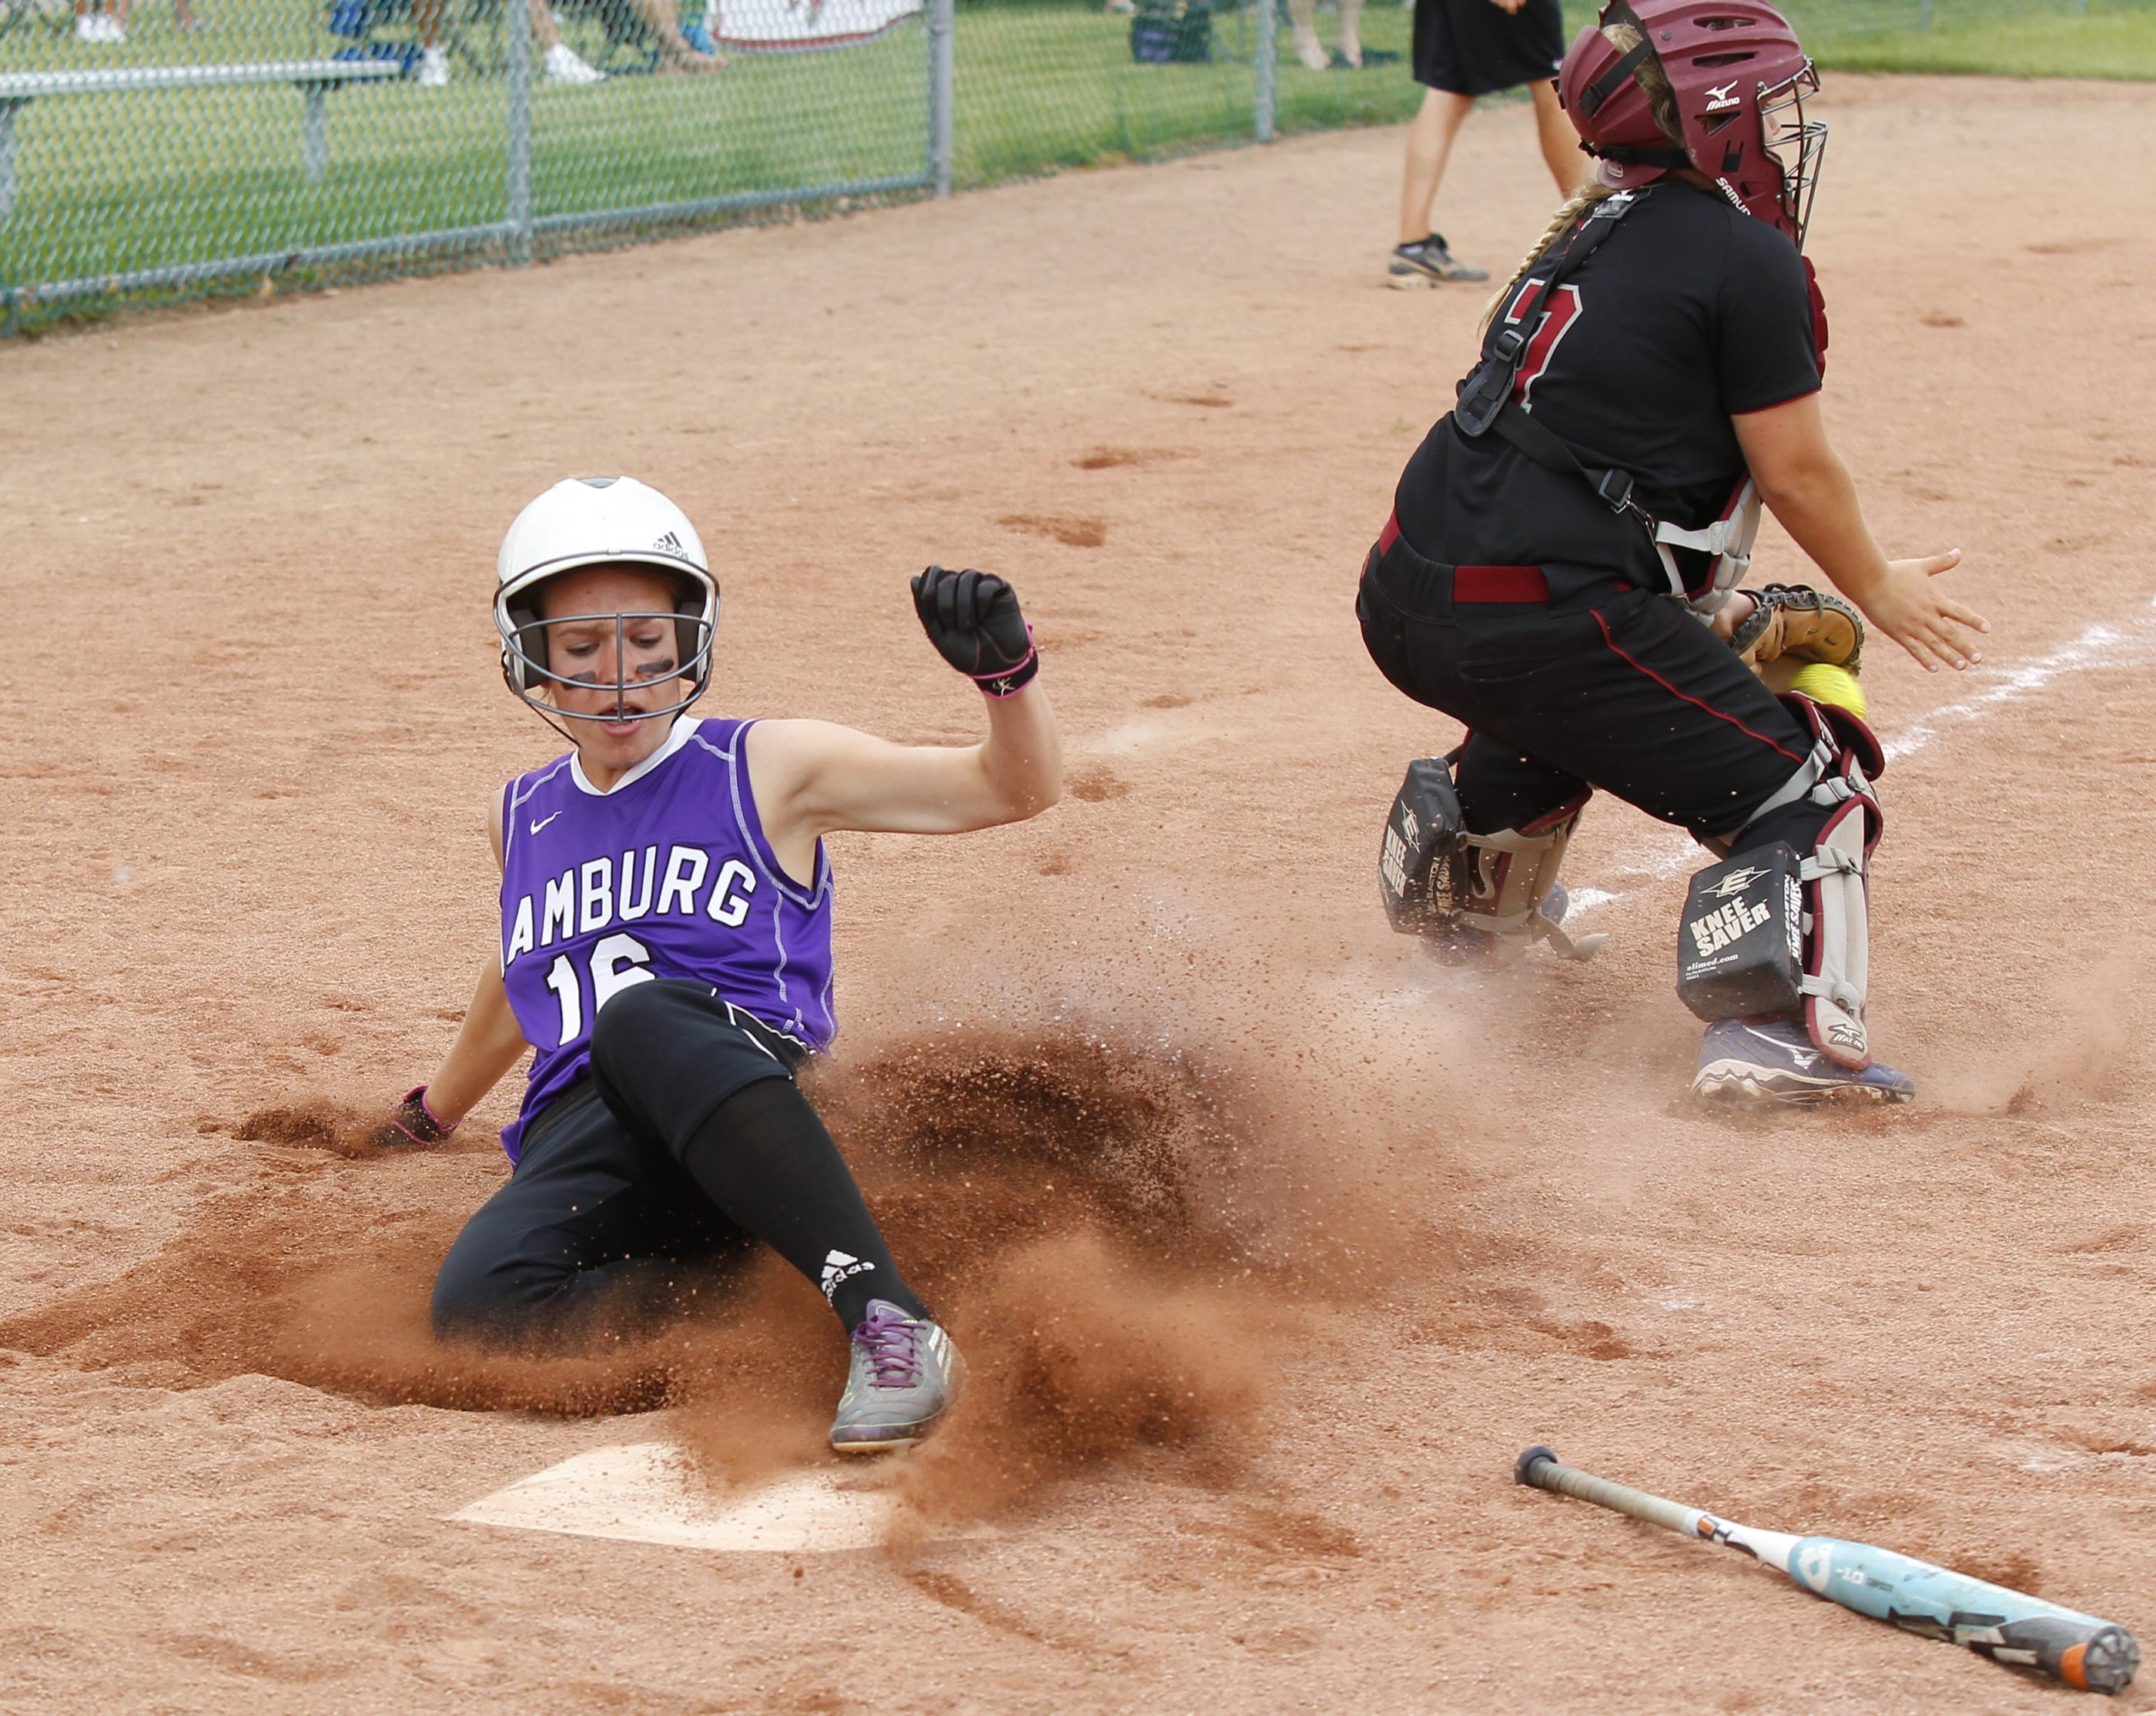 Ashley Jablonski slides home safely with Hamburg's fourth run of the game during the Section VI Class A final against Starpoint.